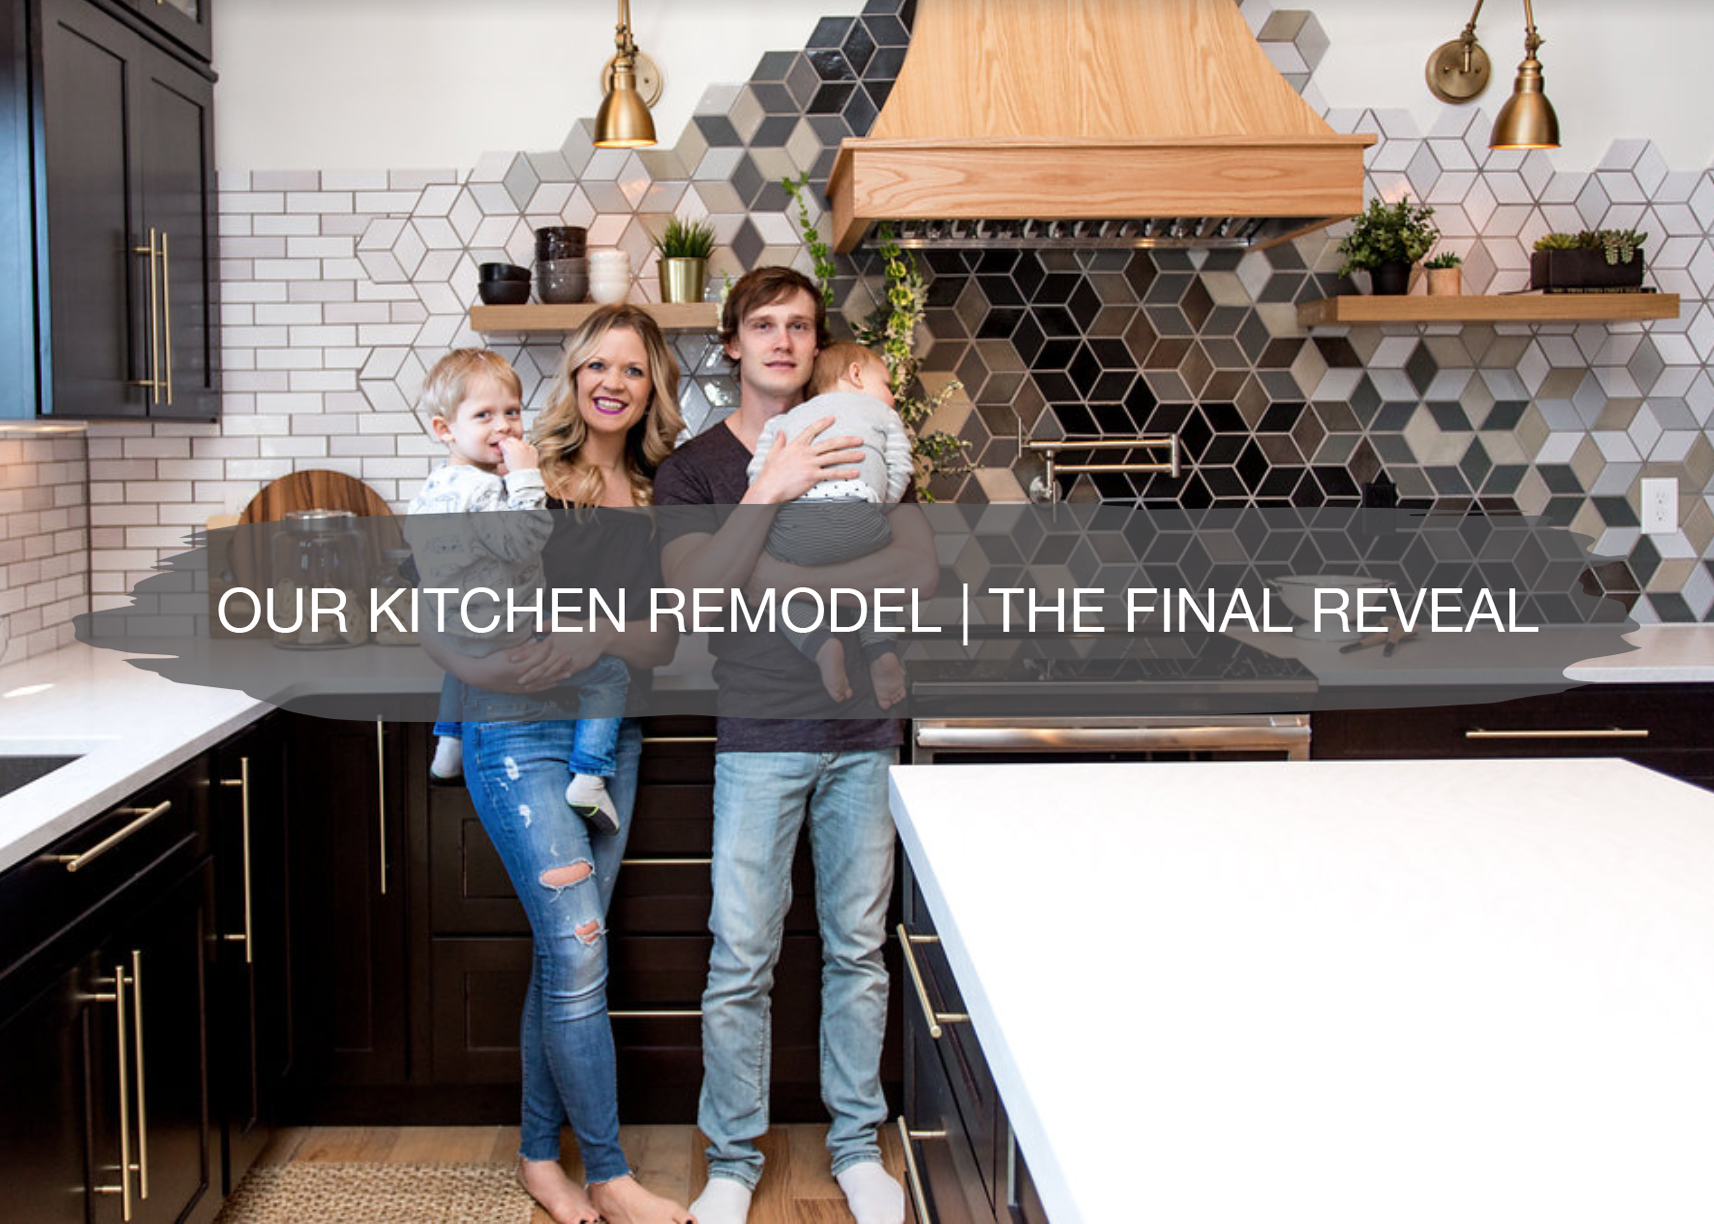 1562793546 324 wow this kitchen remodel is amazing - WOW This Kitchen Remodel Is Amazing